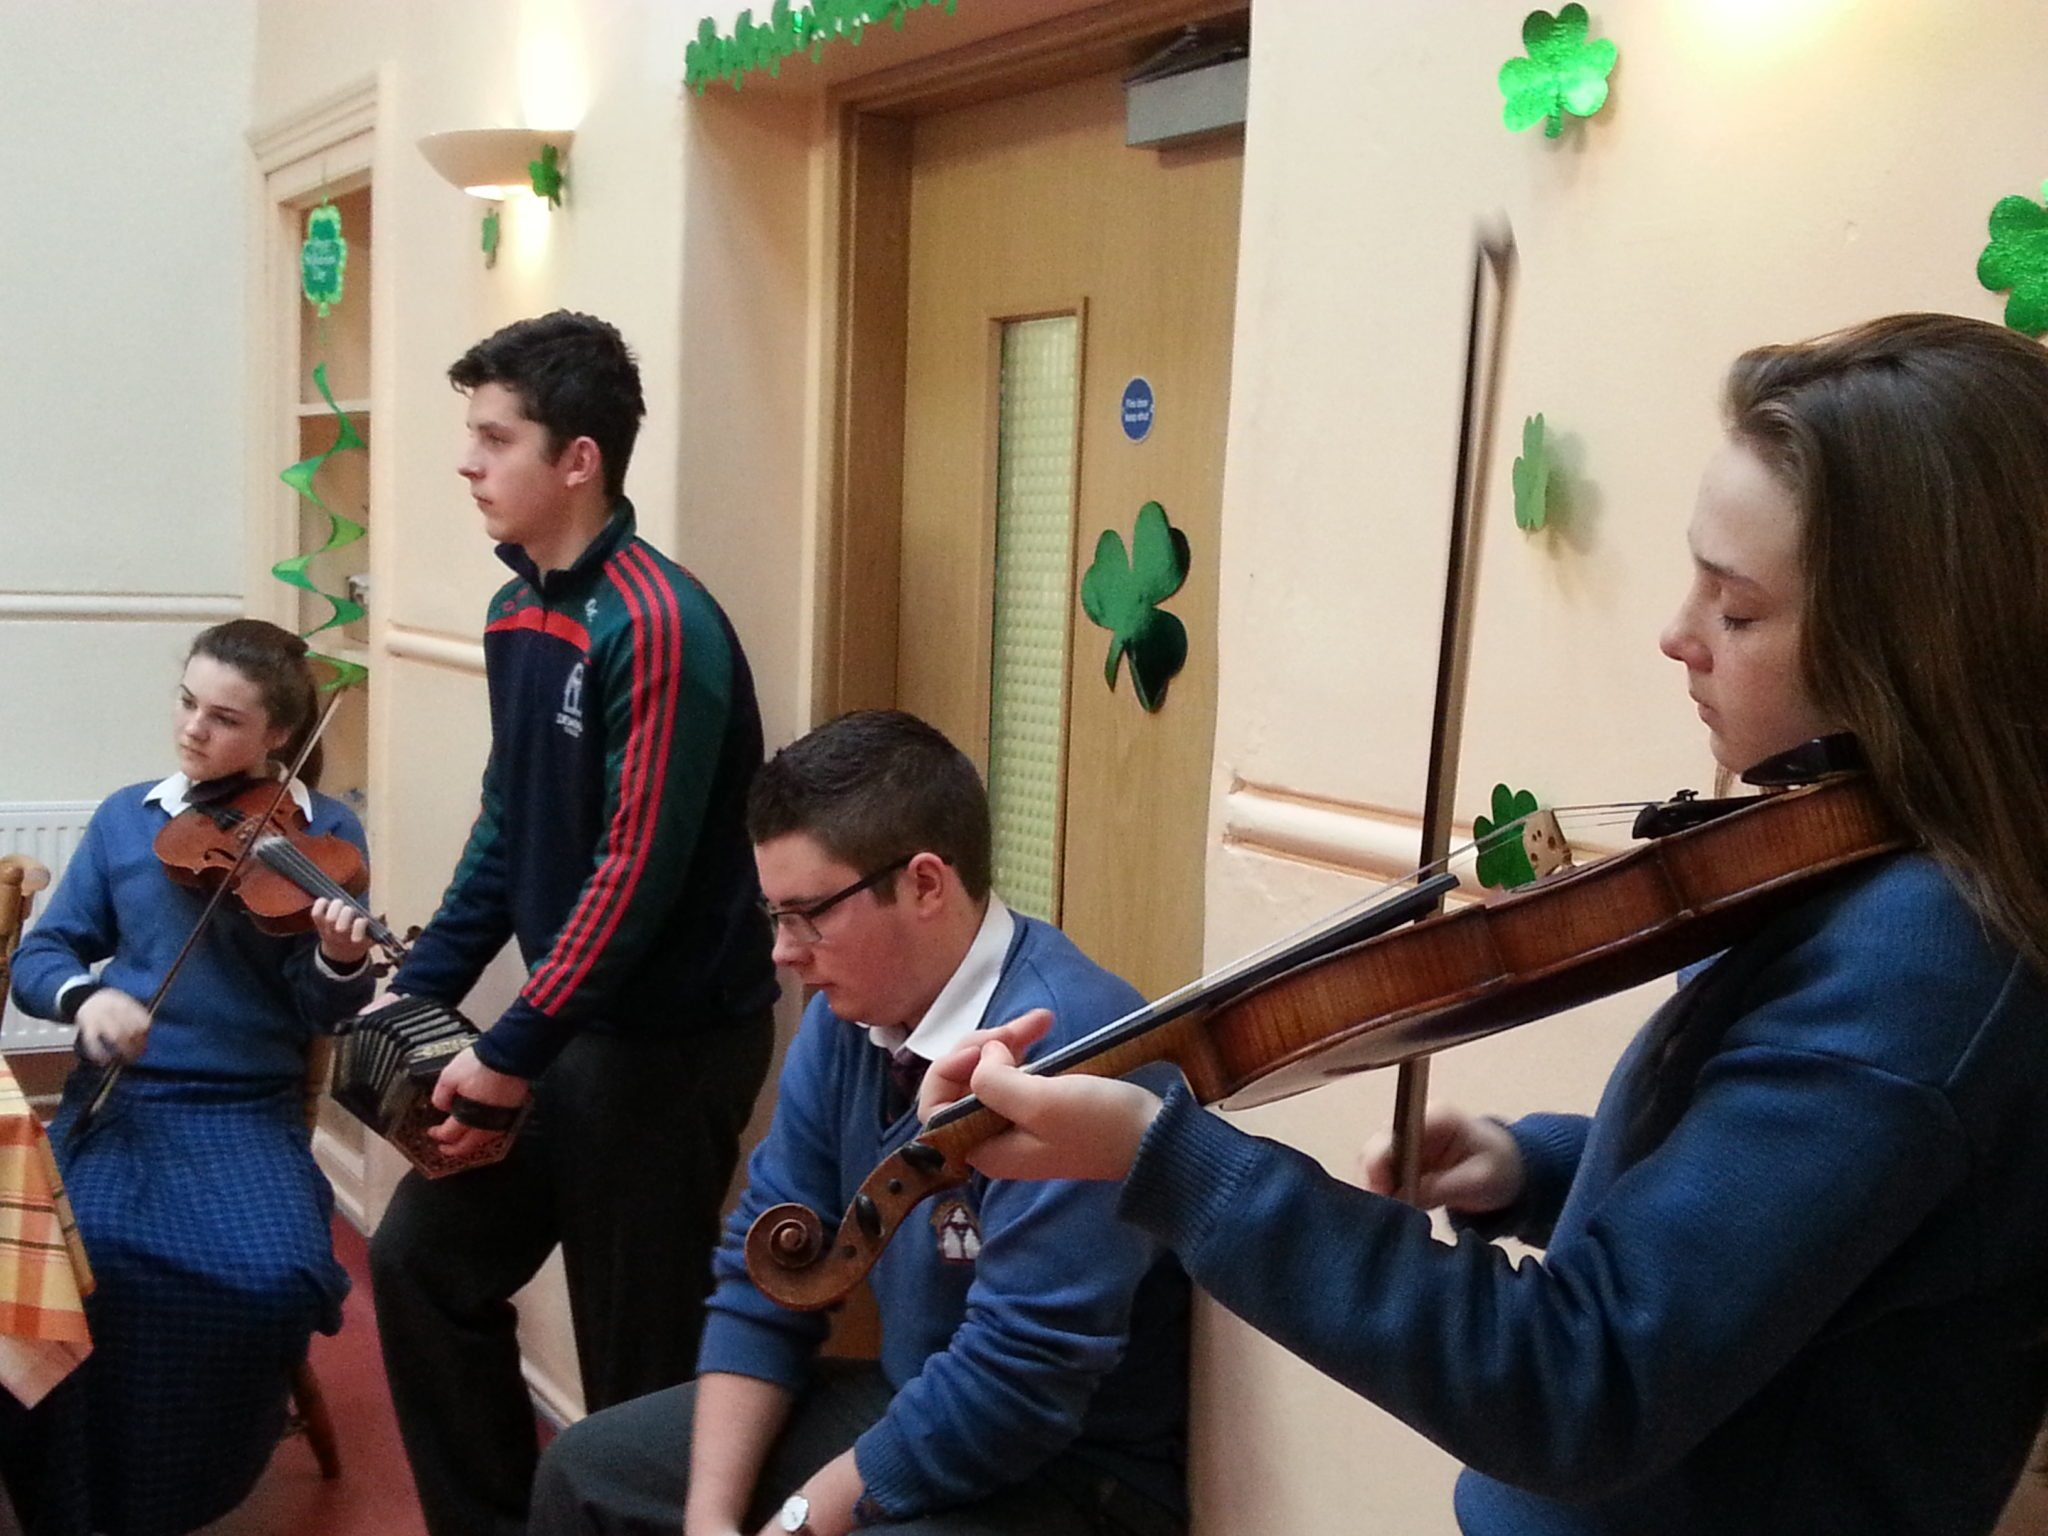 Draiocht Performed at St Ita's Nursing Home for St. Patrick's Day 2015